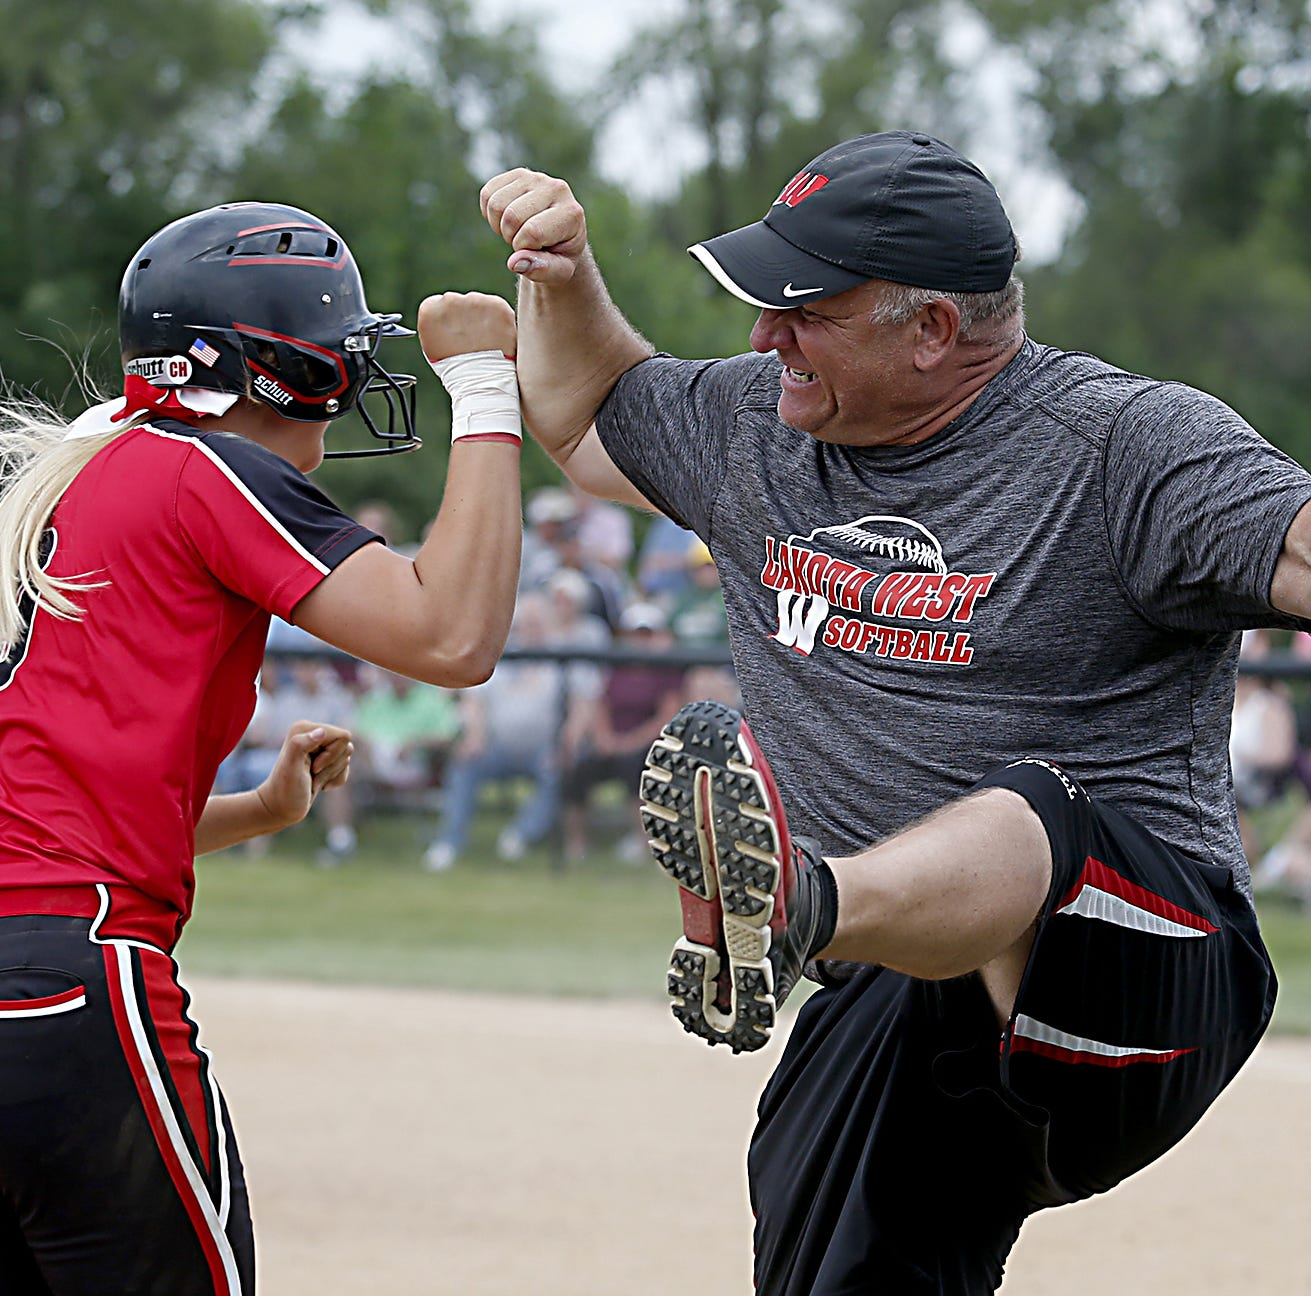 Lakota West batter Alyssa Triner is greeted by head coach Keith Castner after her two-run home run against Lebanon during their Division I regional softball final at Centerville Saturday, May 26, 2018.